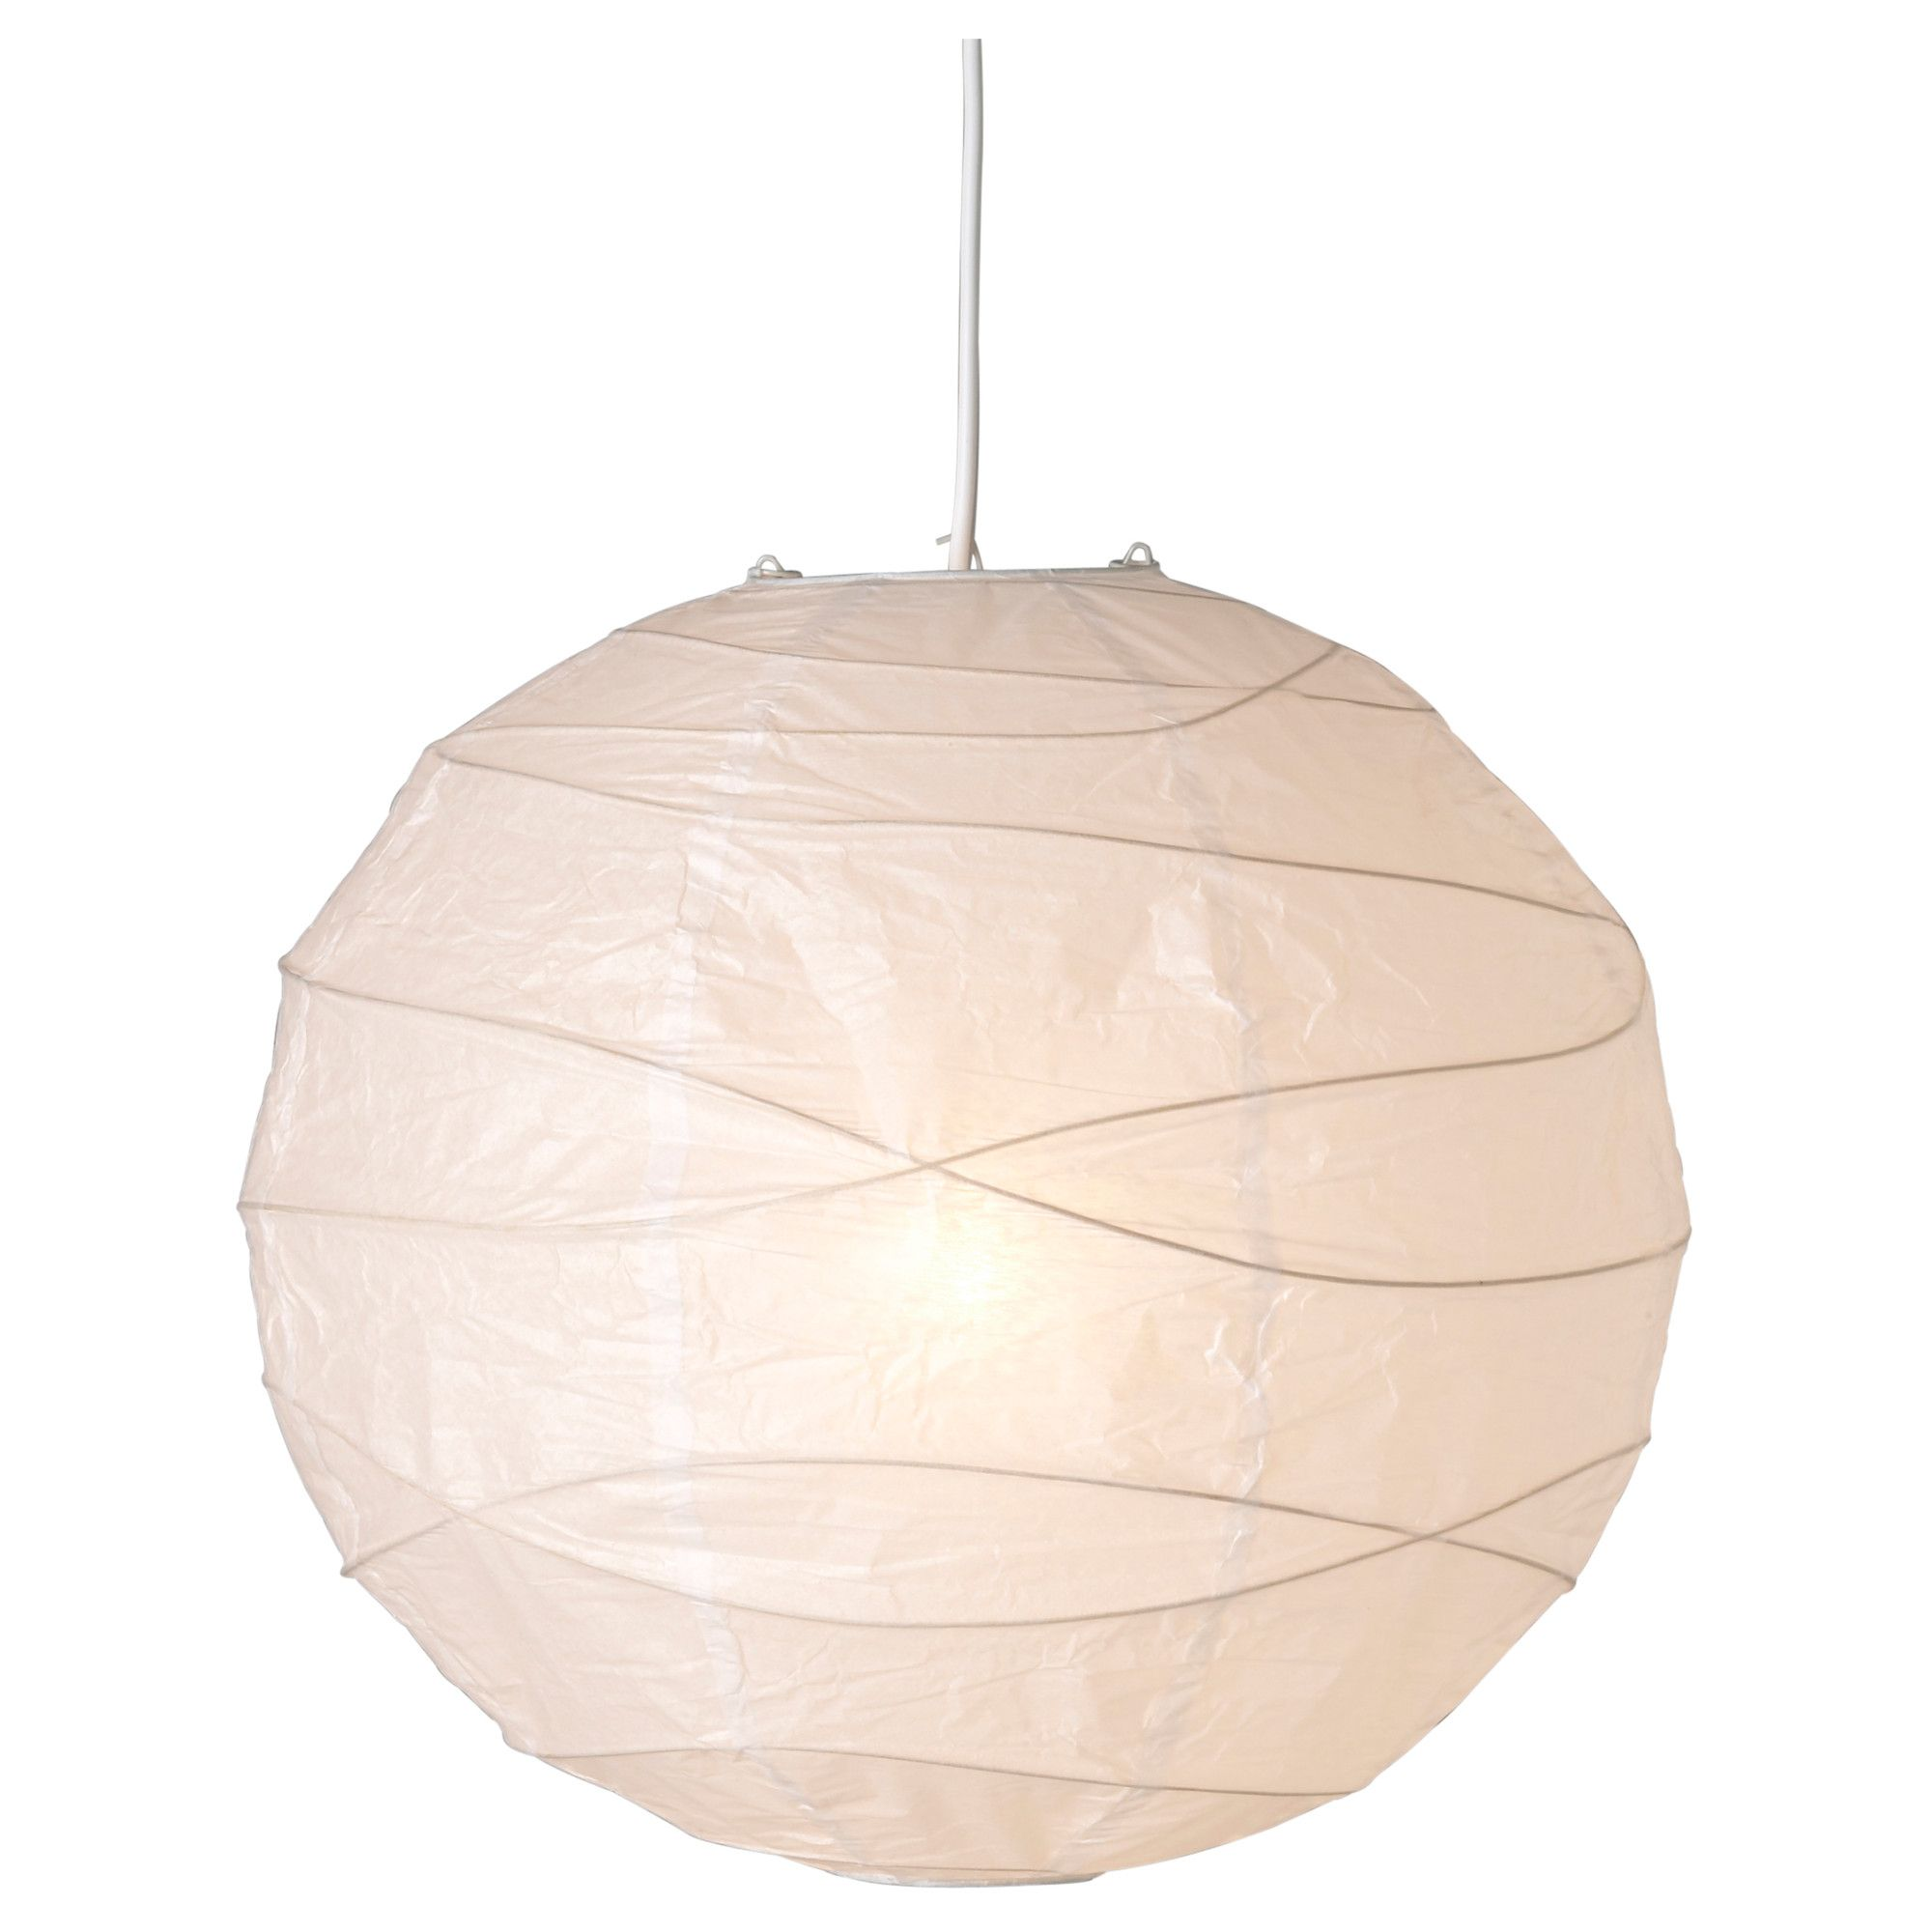 Regolit pendant lamp shade ikea mark lamp shades with paint or regolit pendant lamp shade ikea mark lamp shades with paint or markers and hang aloadofball Images